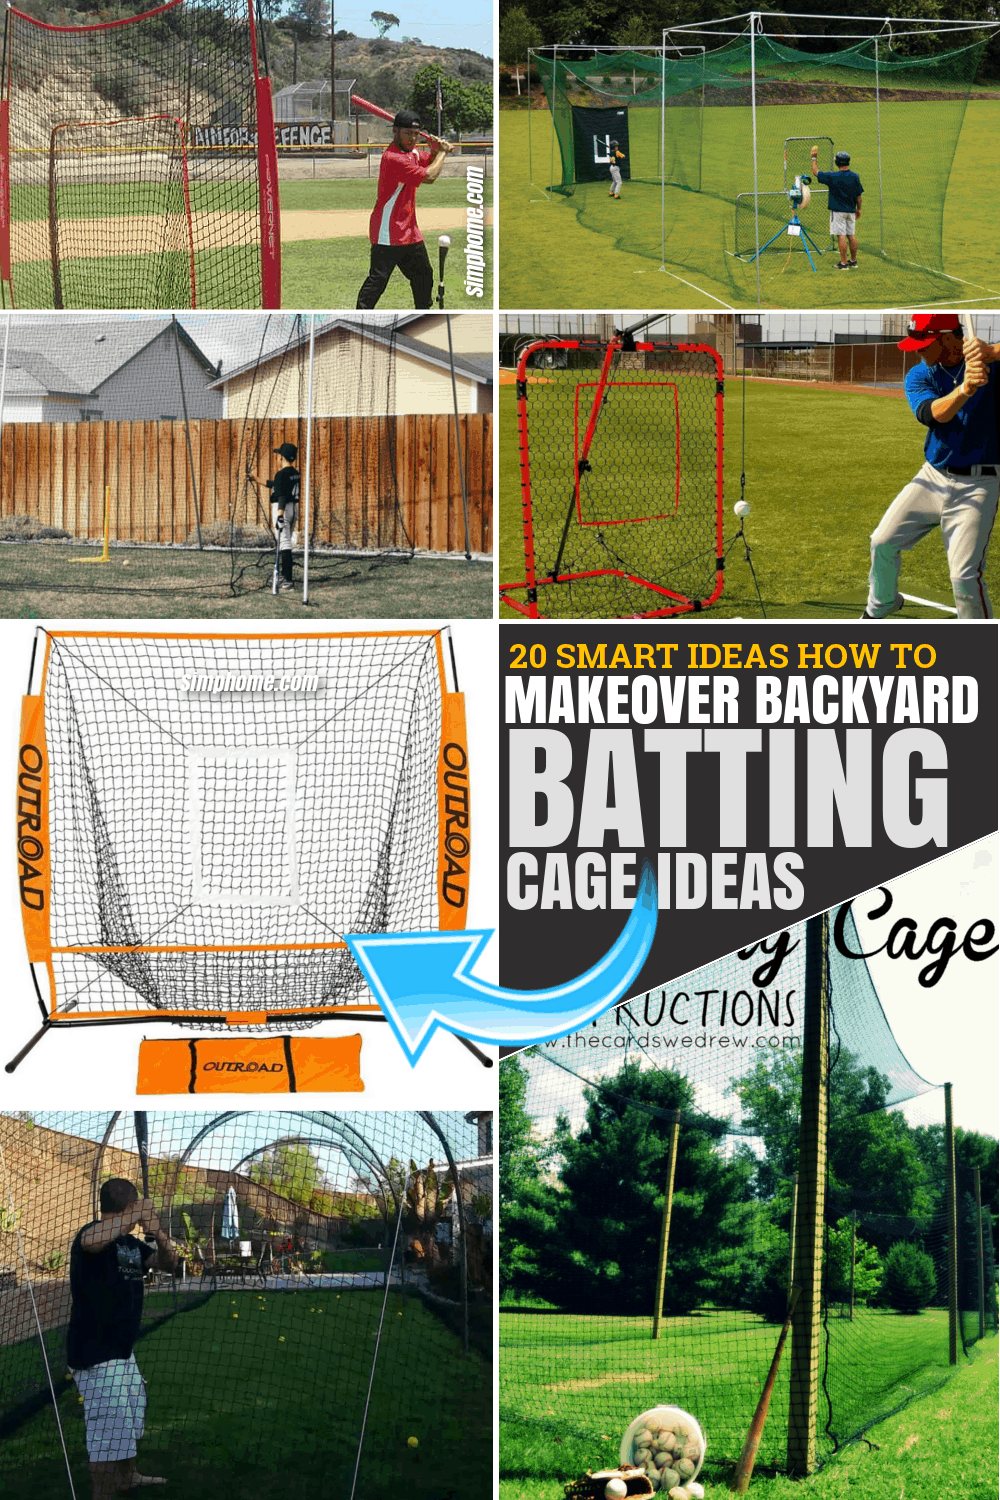 30 Smart Ideas How to Make Backyard Batting Cages ...